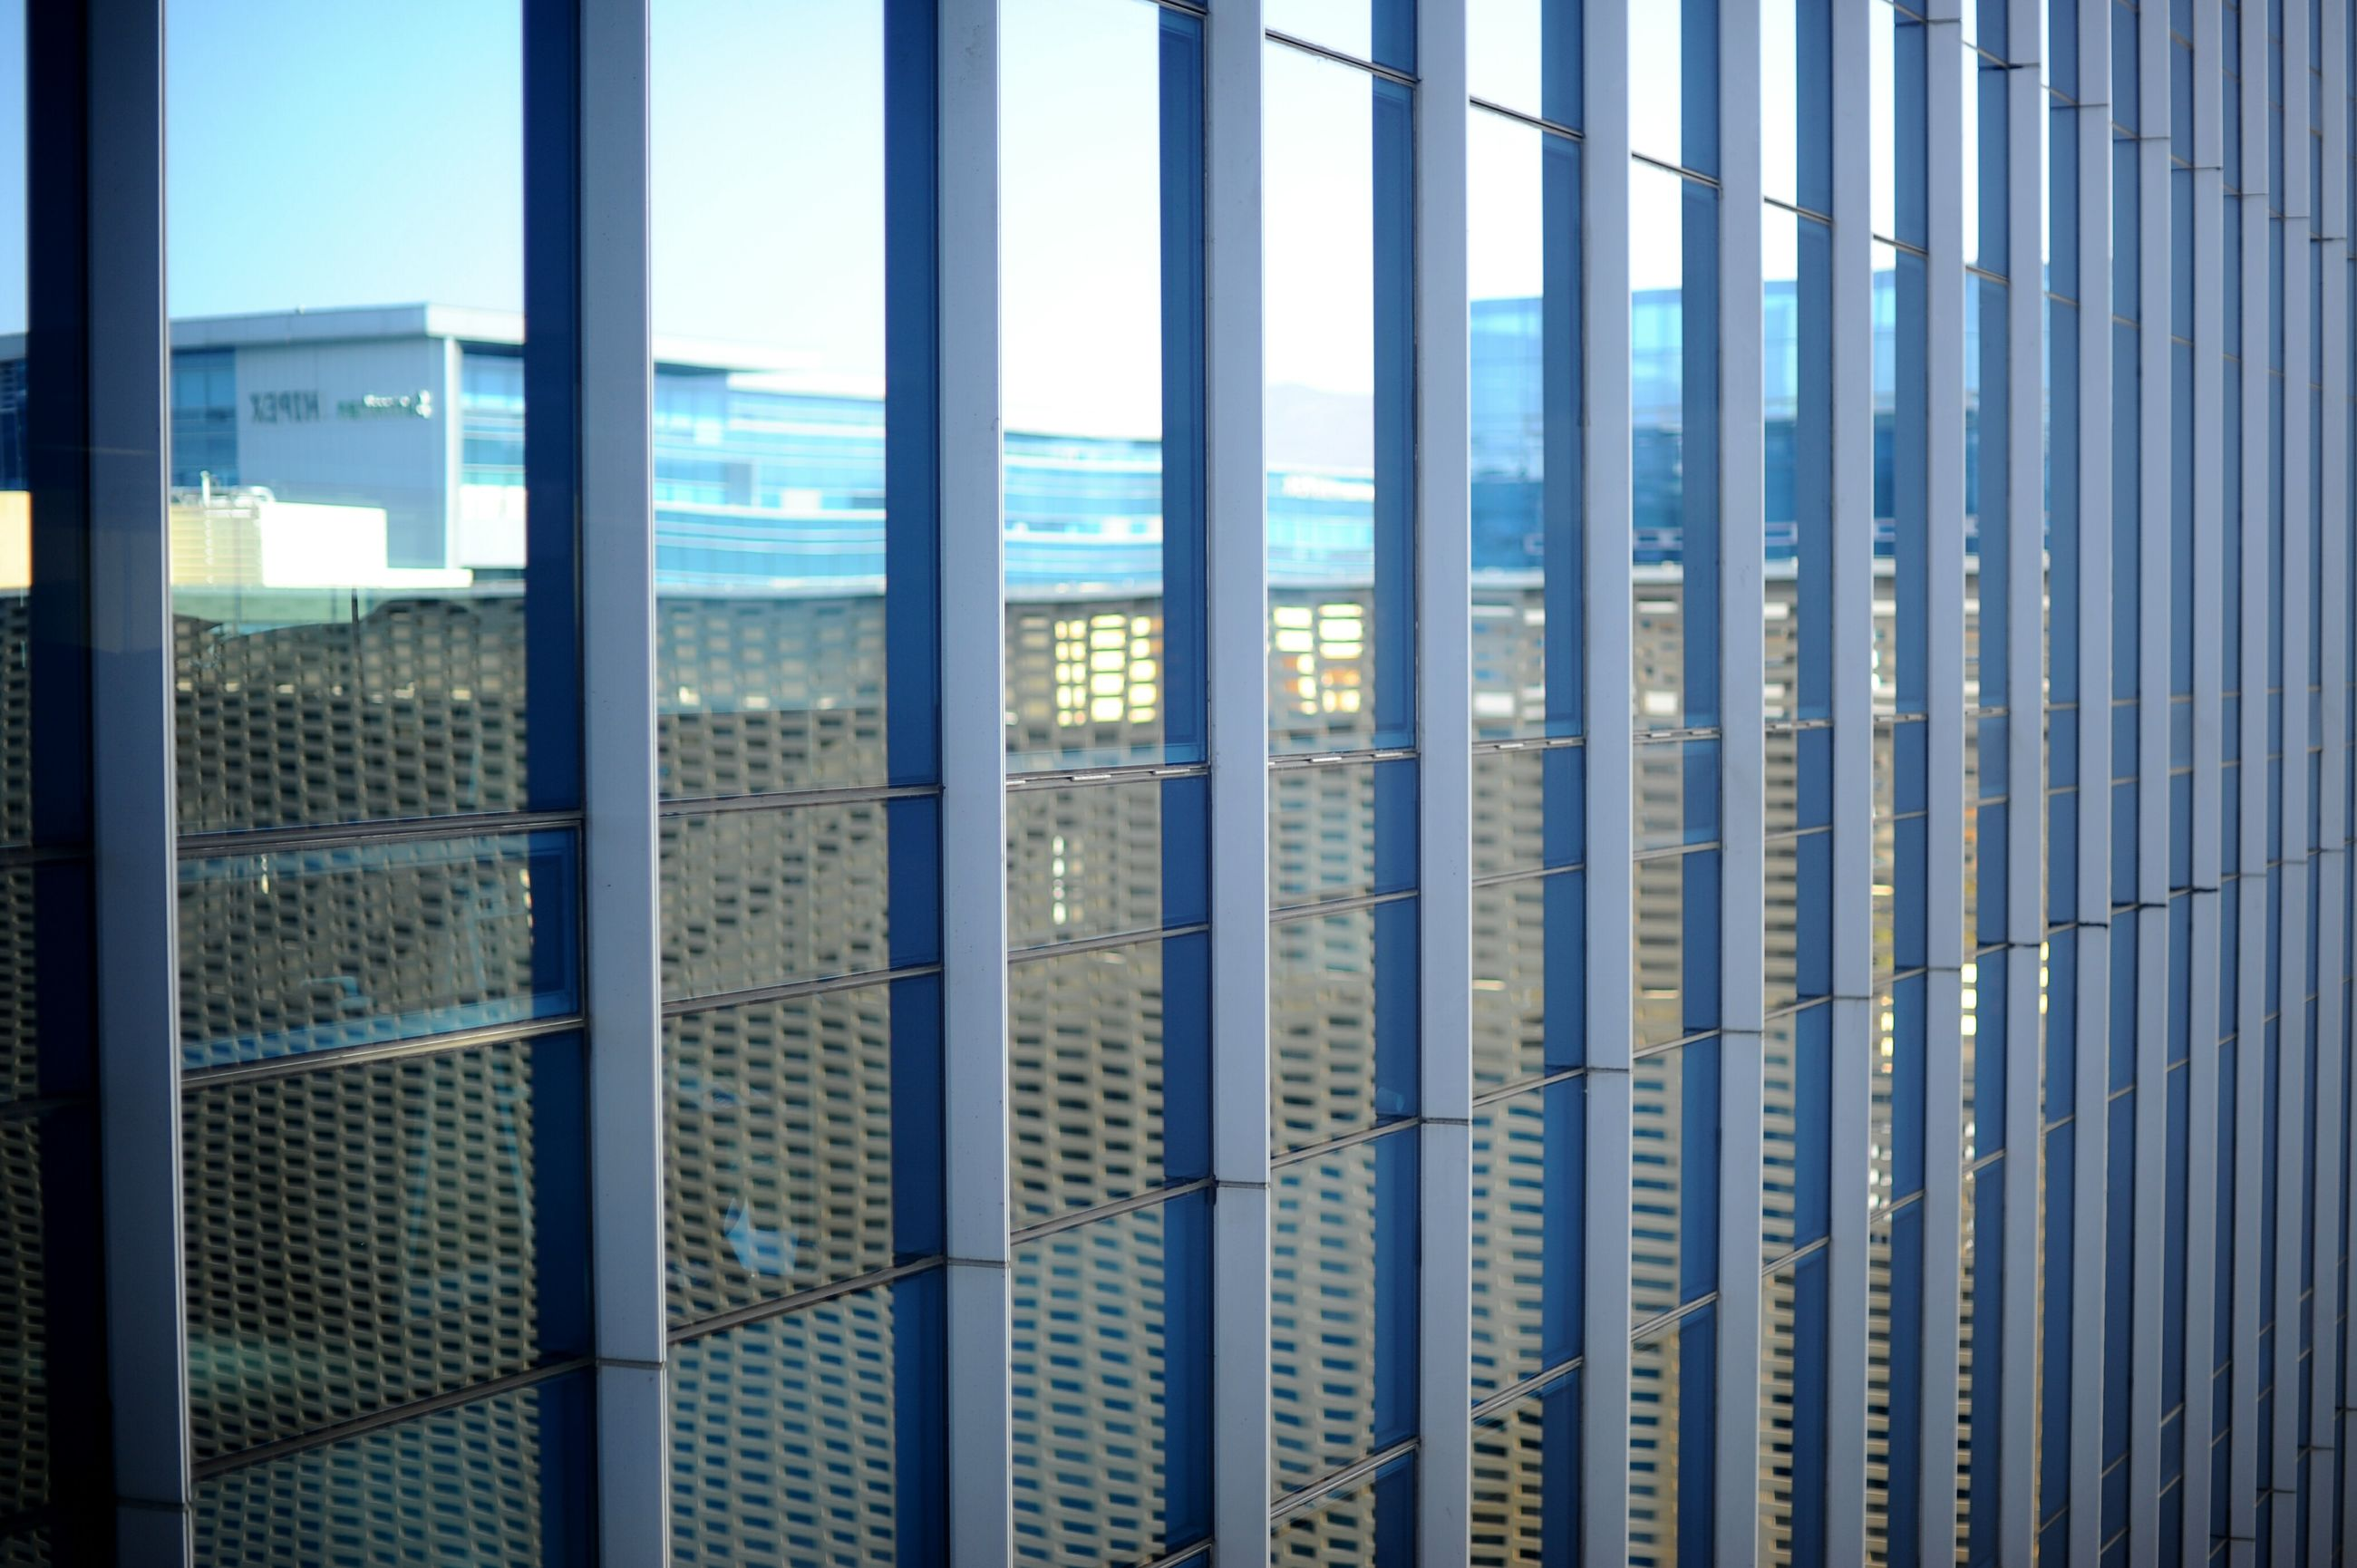 architecture, window, built structure, indoors, glass - material, pattern, sea, transparent, day, modern, building exterior, no people, repetition, sunlight, city, architectural column, metal, sky, design, protection